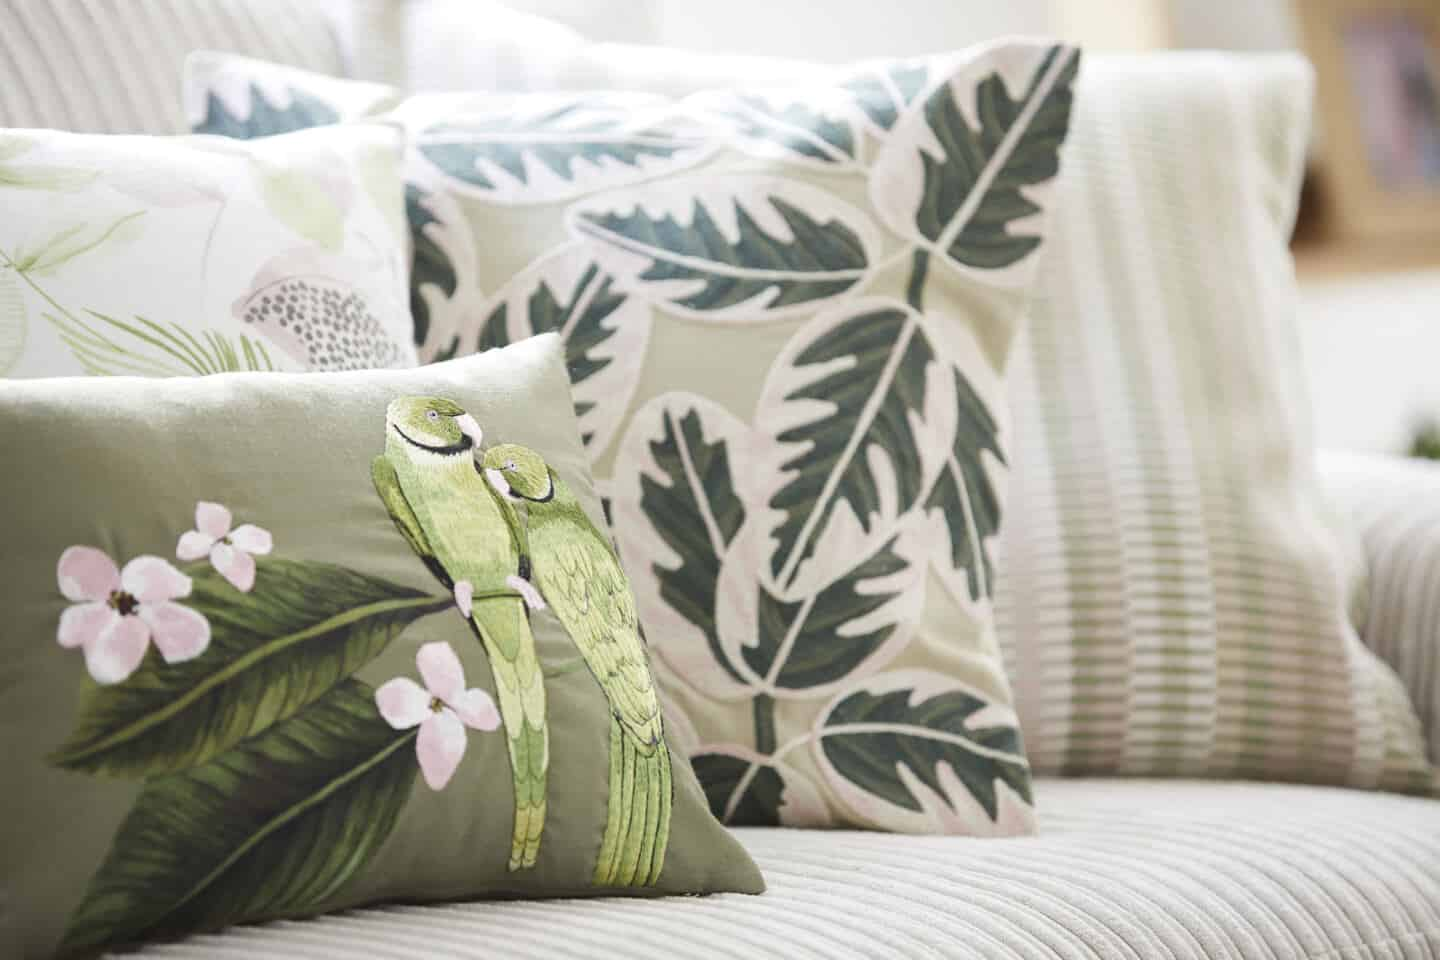 Sancturary is a SS20 interiors trend by Dunelm that features nature in interiors. These cushions feature lots of tactile textures,  and leafy green prints.